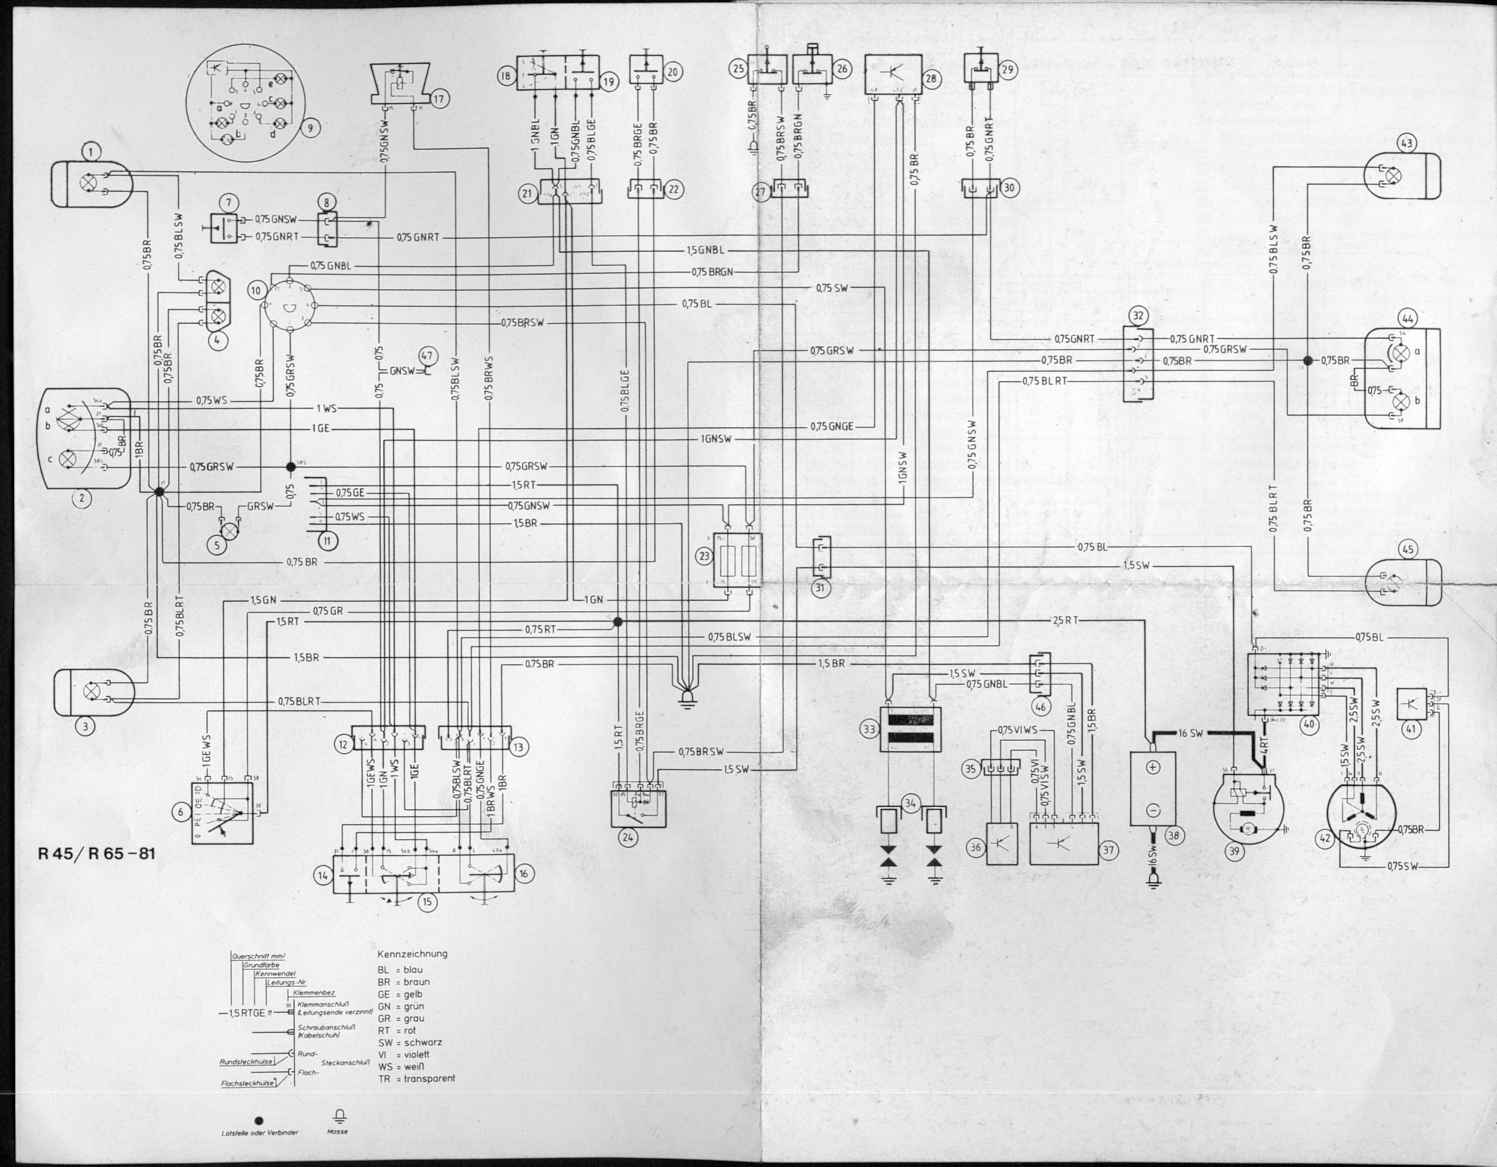 Bmw K100rs Wiring Diagram Real 1973 Motorcycle R850r Odicis K75